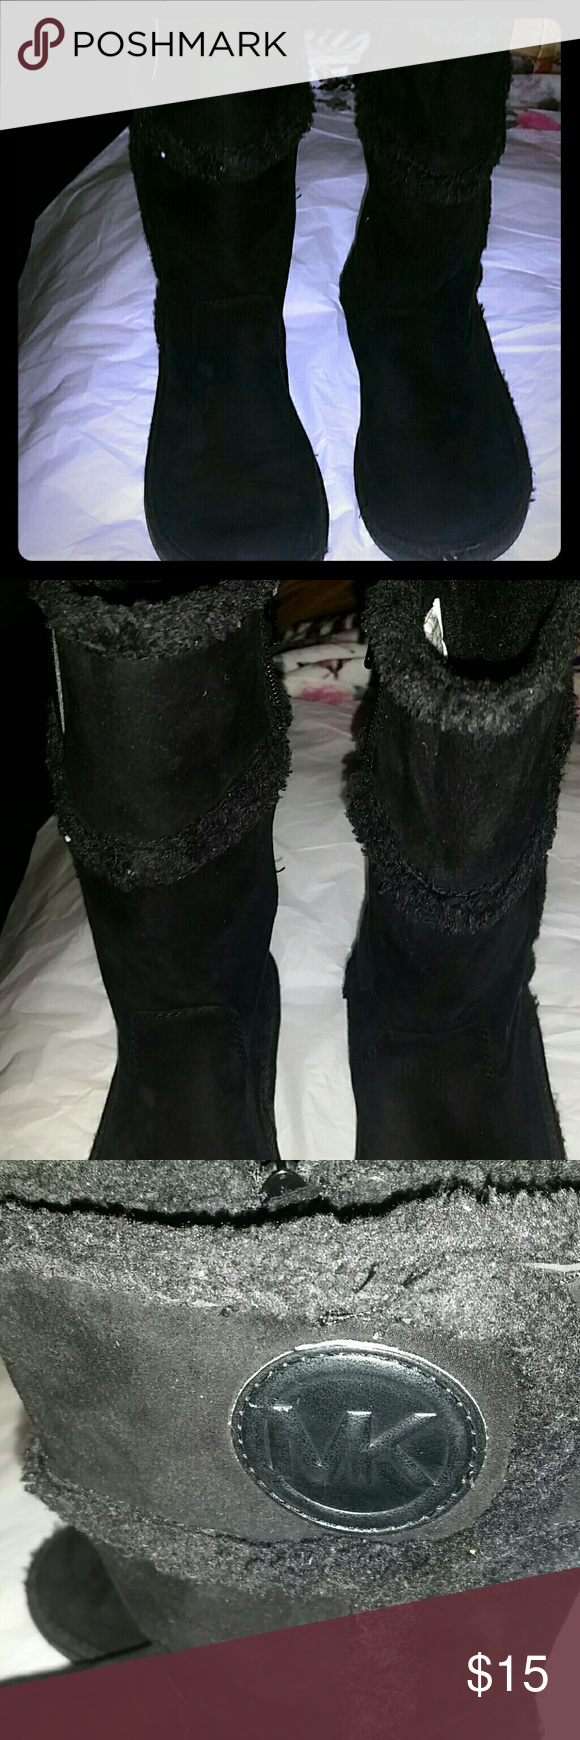 MK Shoes  size 1 Gently Used KORS Michael Kors Shoes Boots